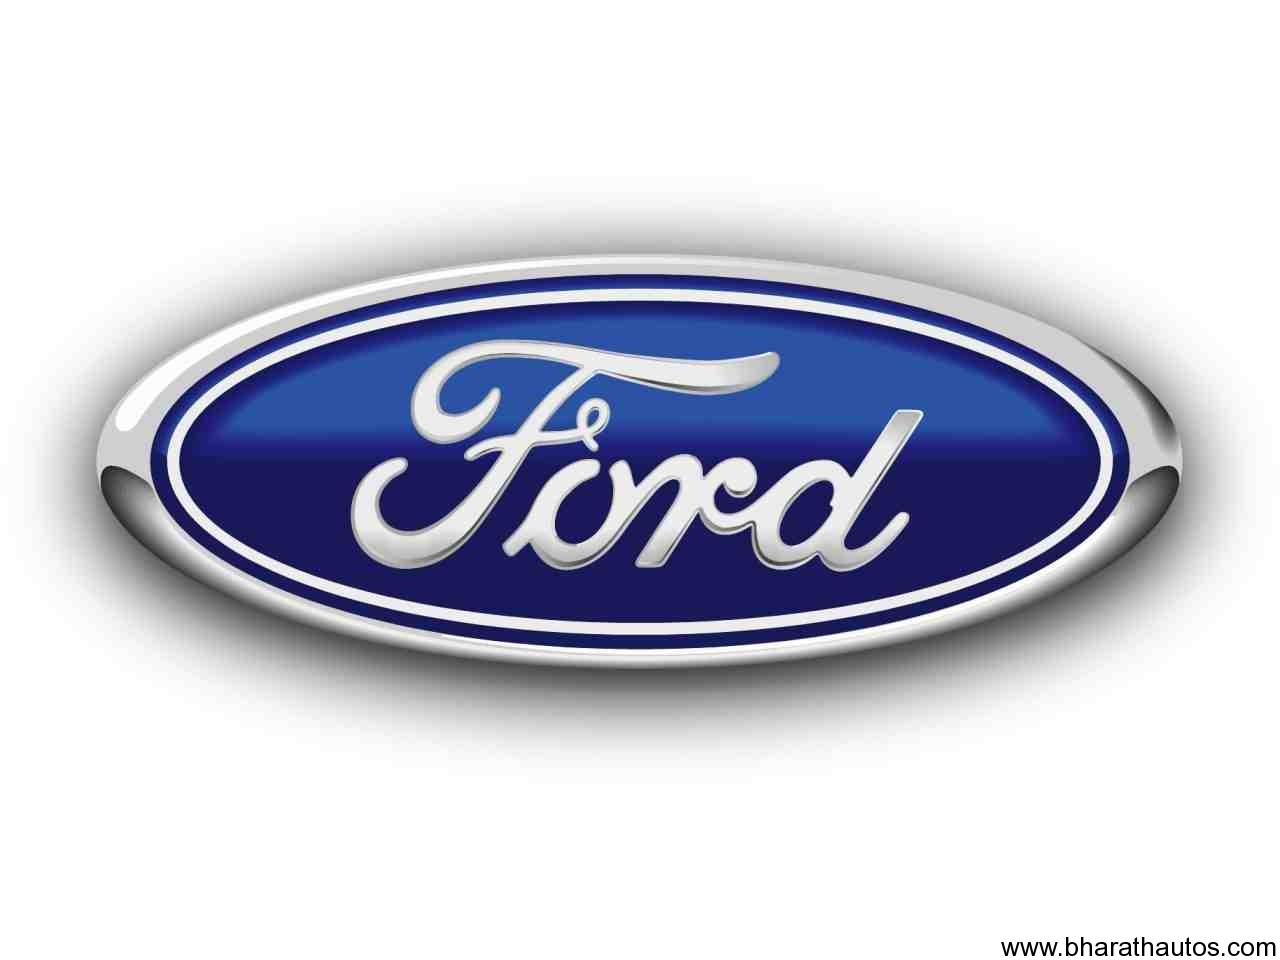 Ford to bring 20 new engines to China by 2015